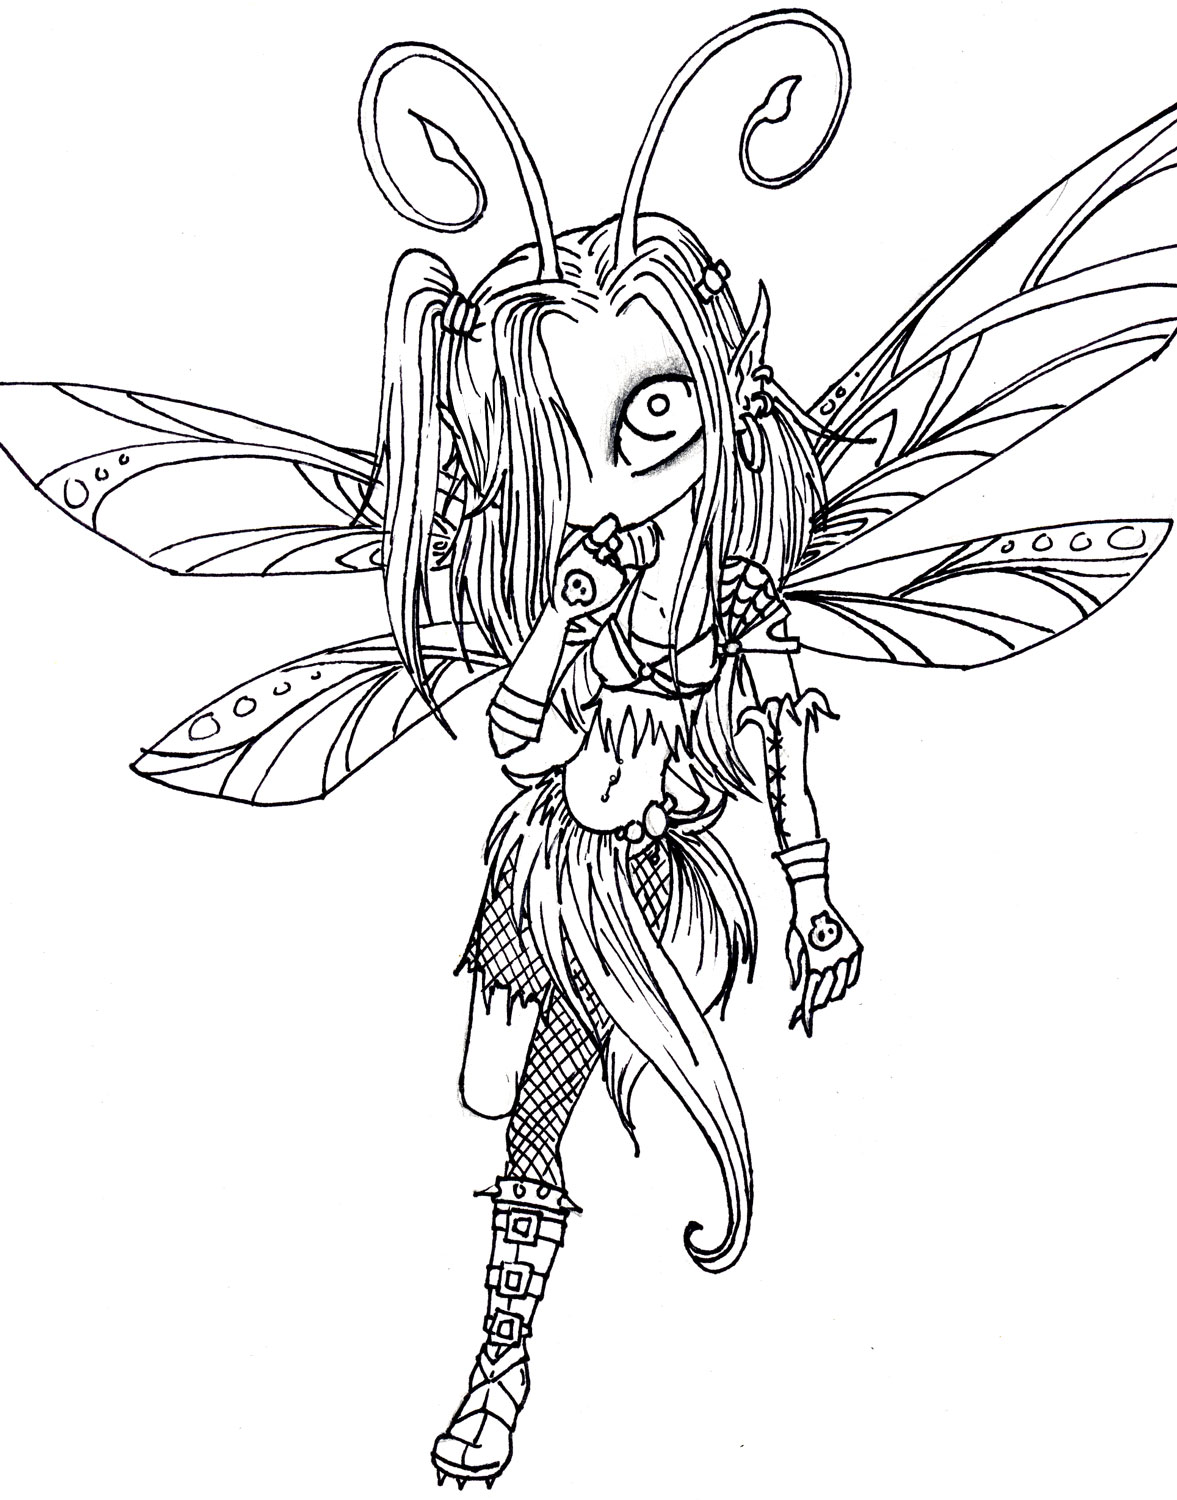 Boy Fairies Coloring Pages At Getdrawings Com Free For Personal